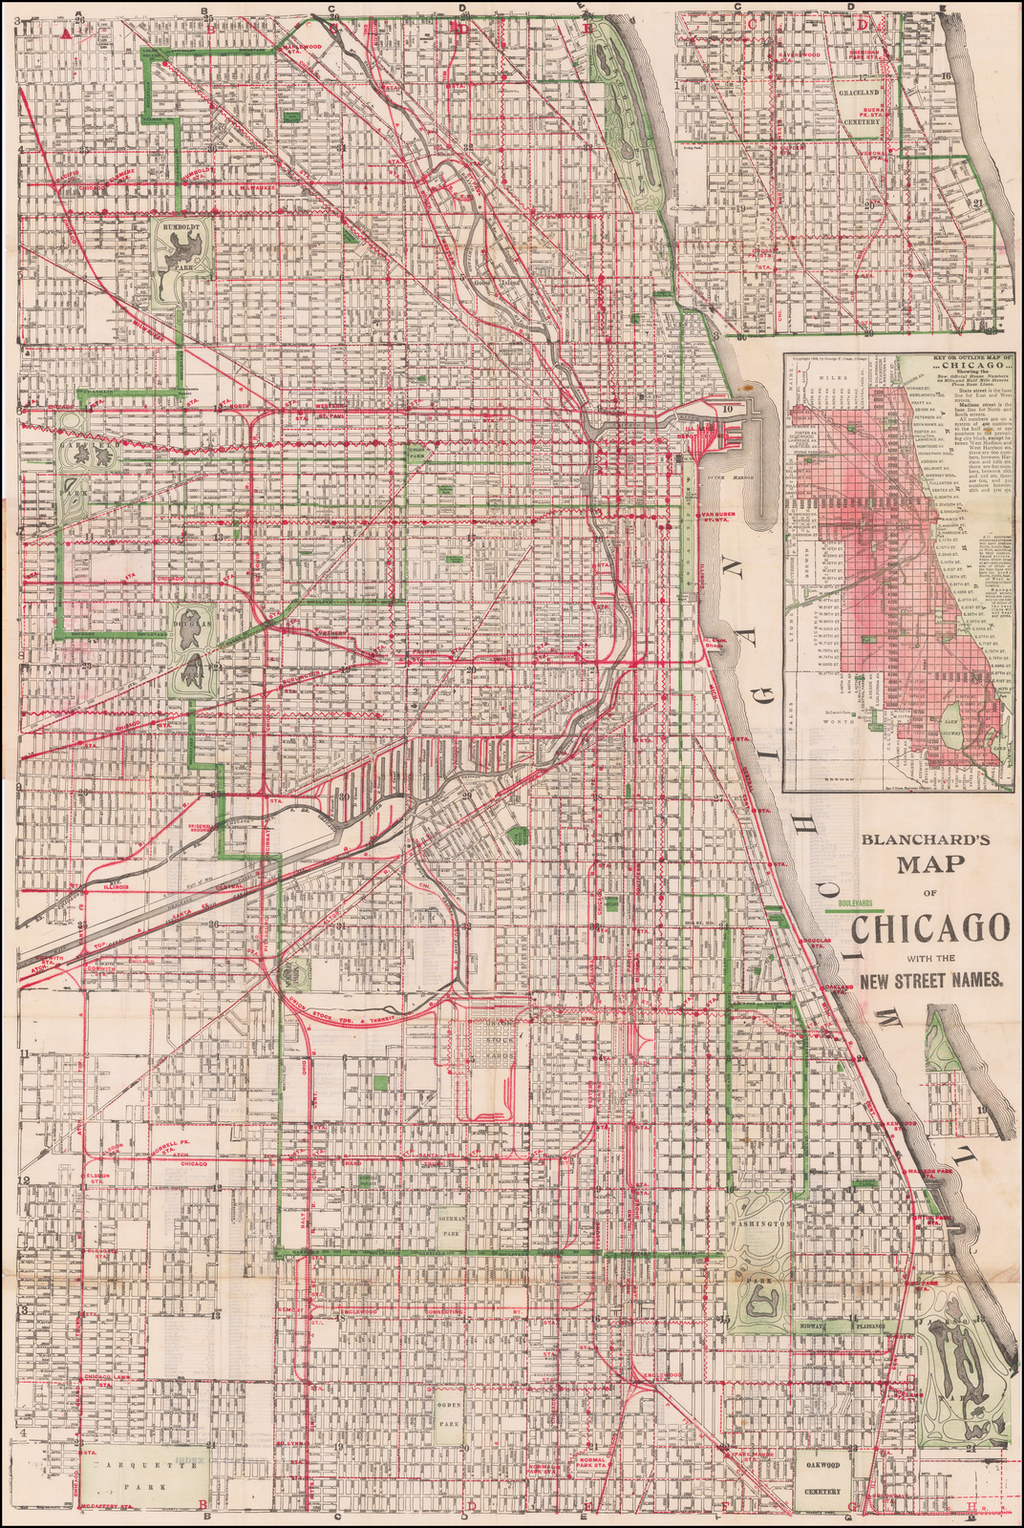 Blanchard's Map of Chicago By George F. Cram / Rufus Blanchard